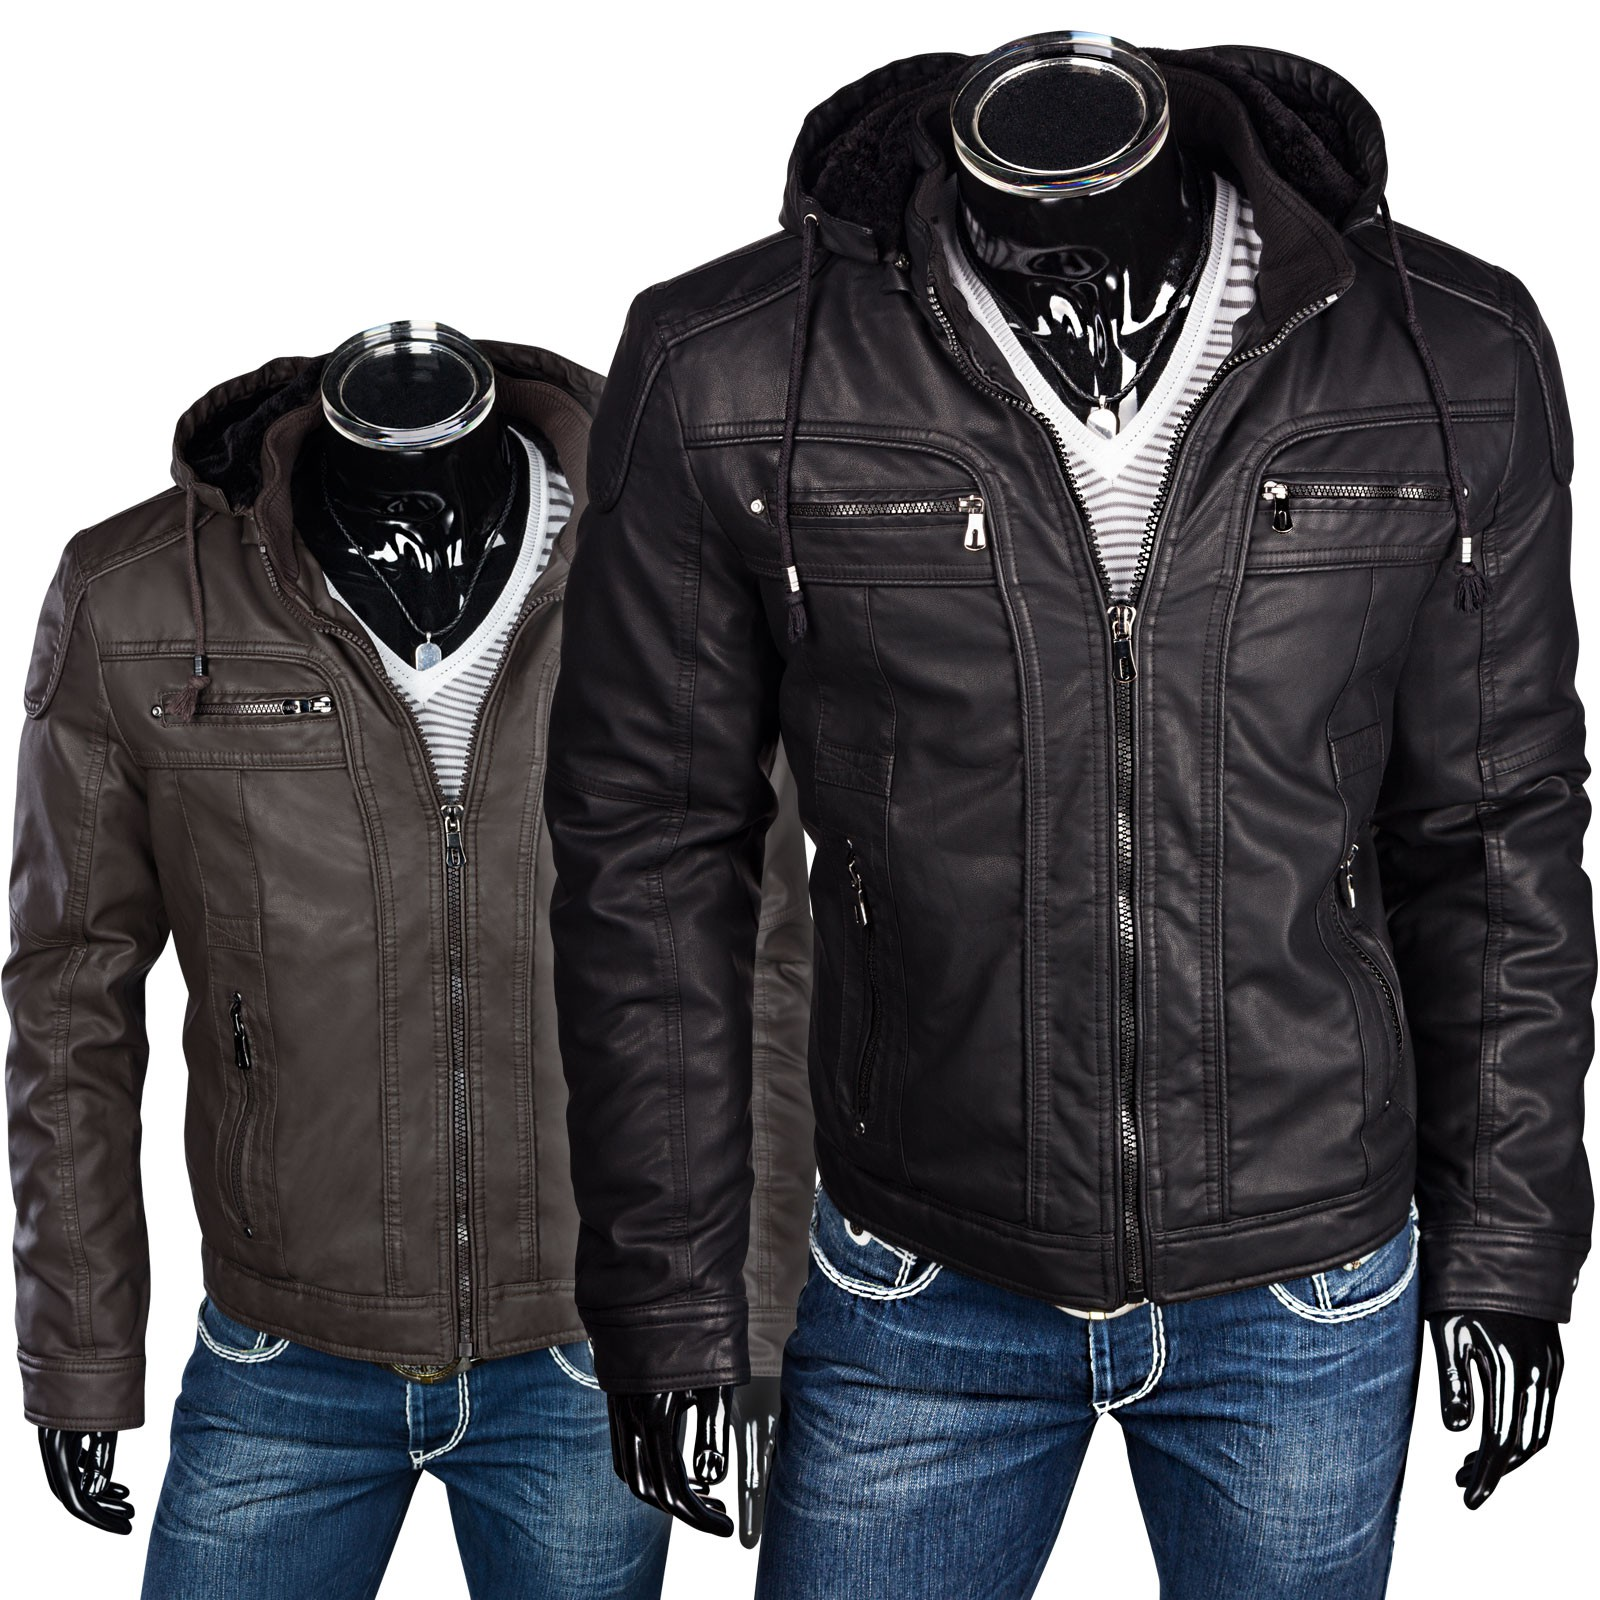 herren winterjacke kunstederjacke mit kapuze bikerjacke. Black Bedroom Furniture Sets. Home Design Ideas